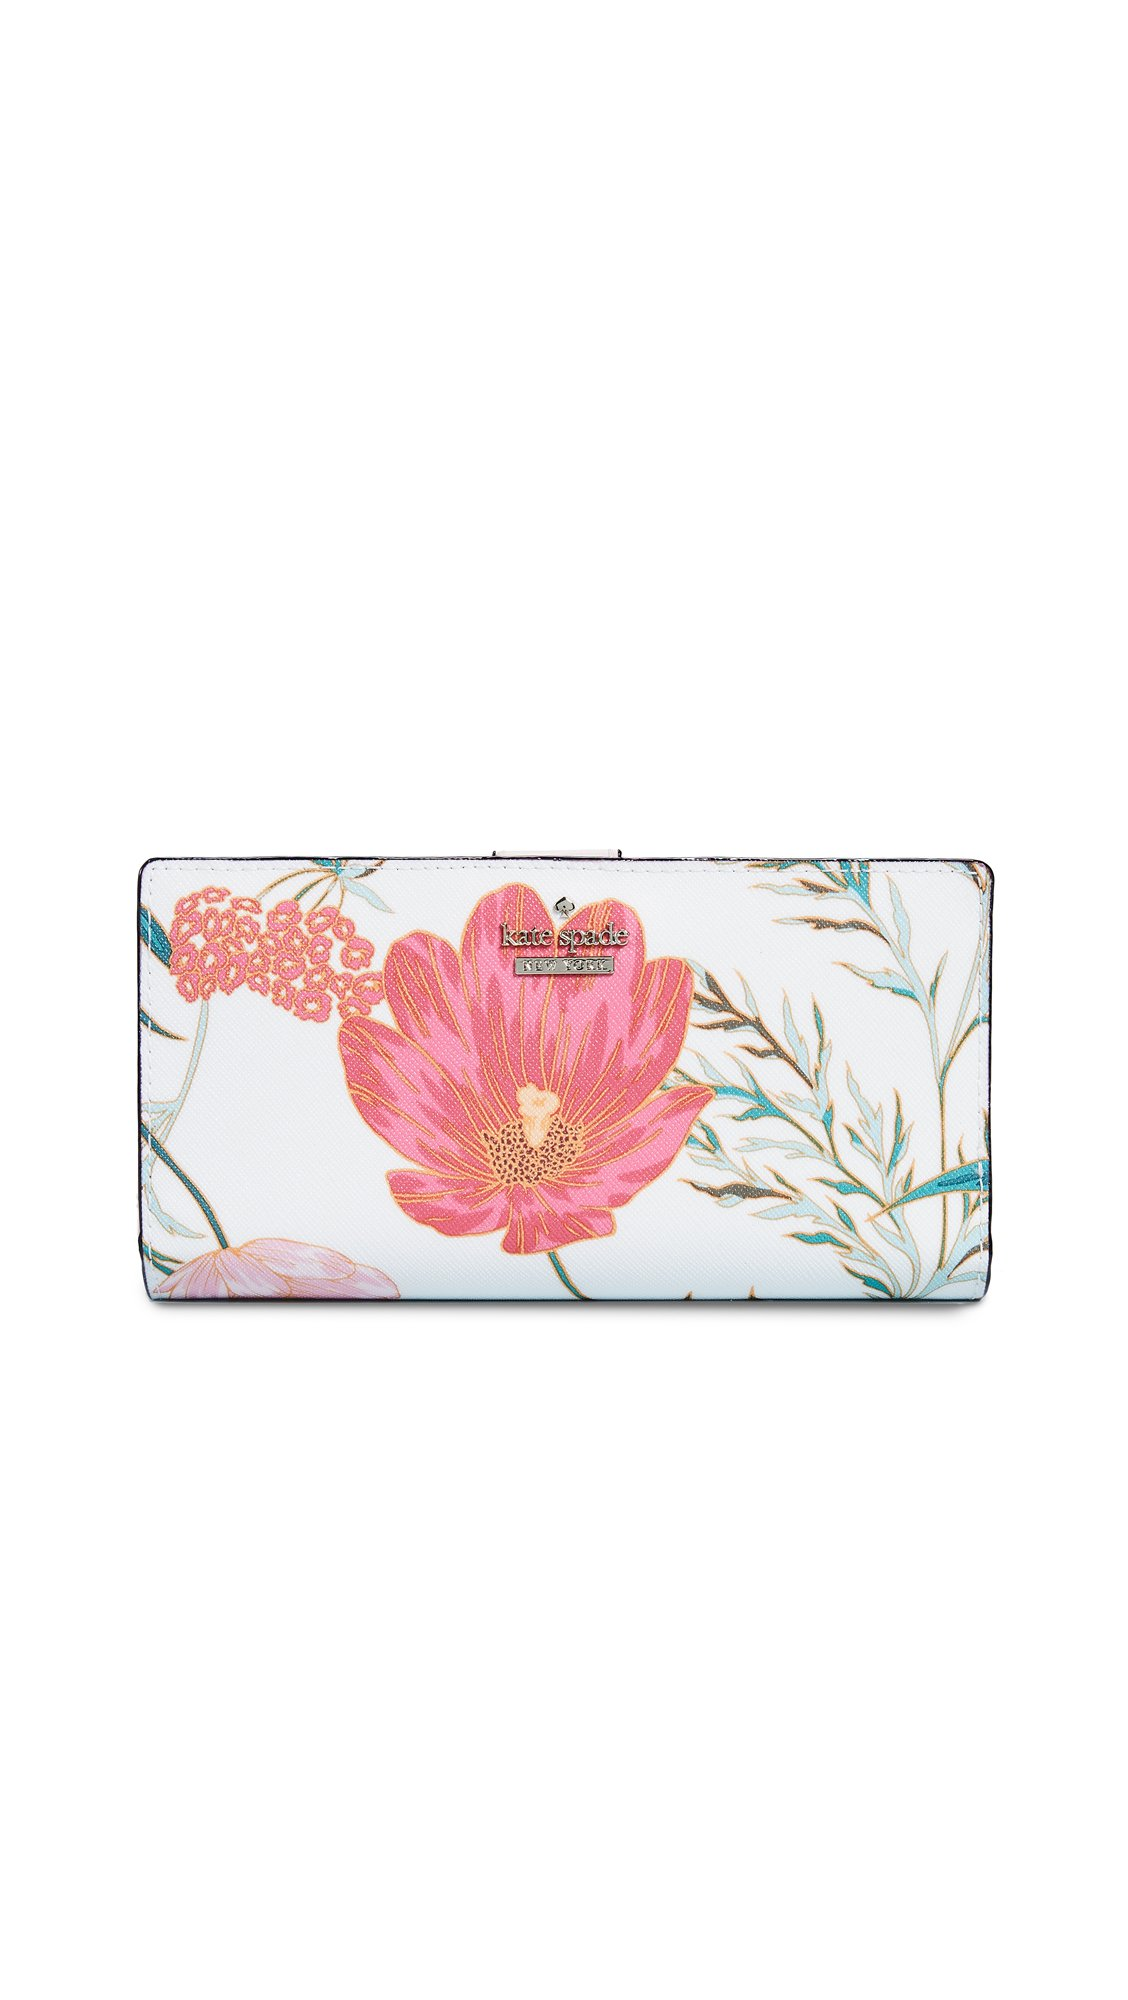 Kate Spade New York Women's Stacy Snap Wallet, Cream Multi, One Size